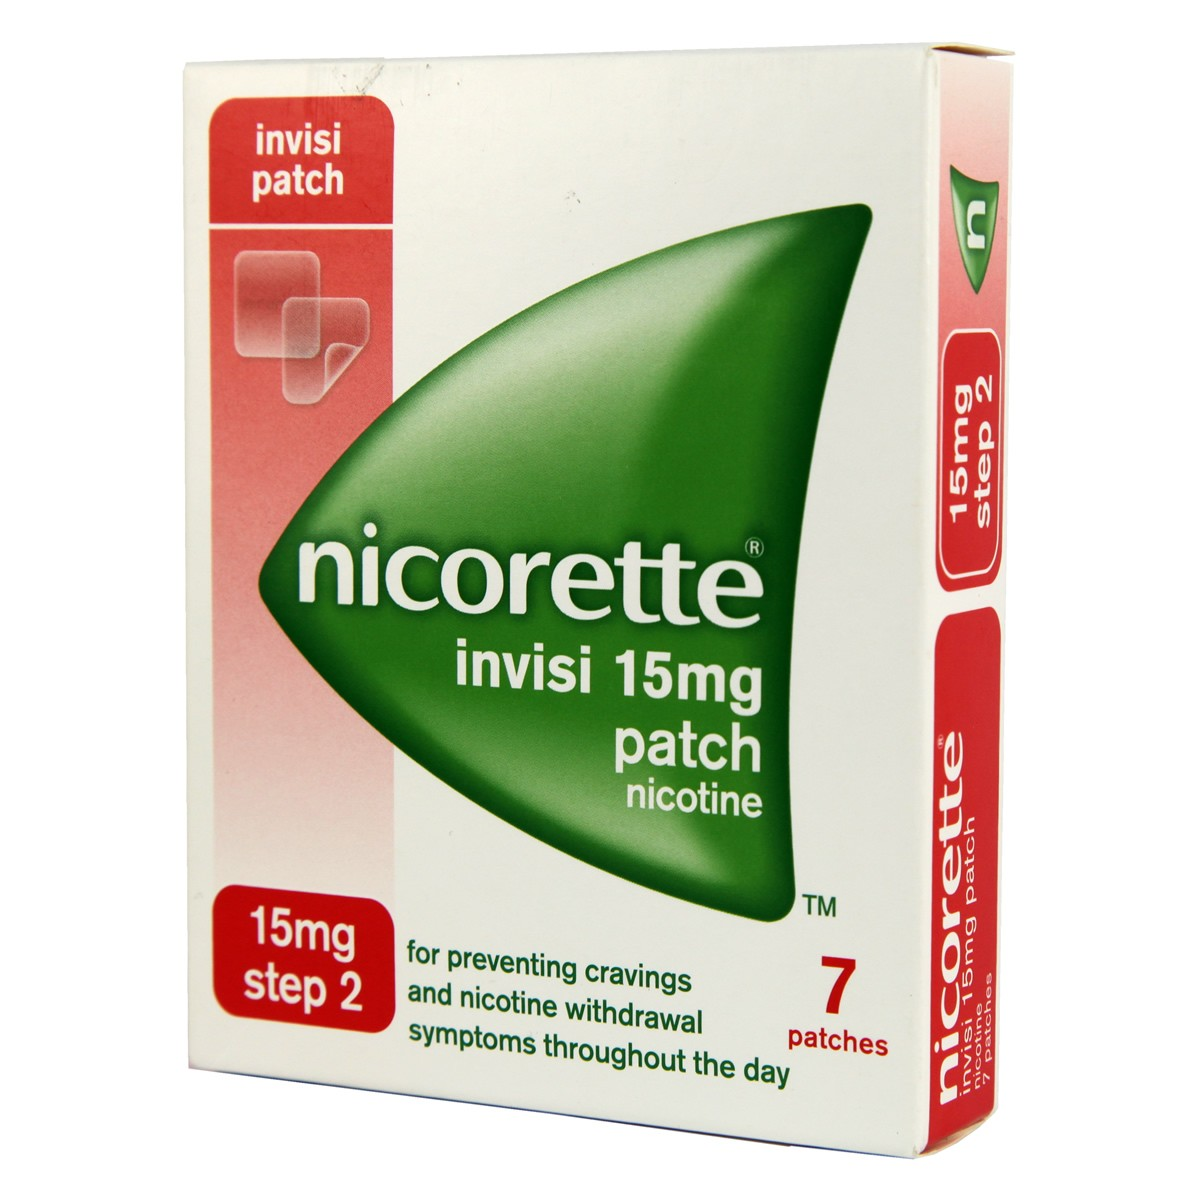 Nicorette Invisi Patch Step 2 - 15mg